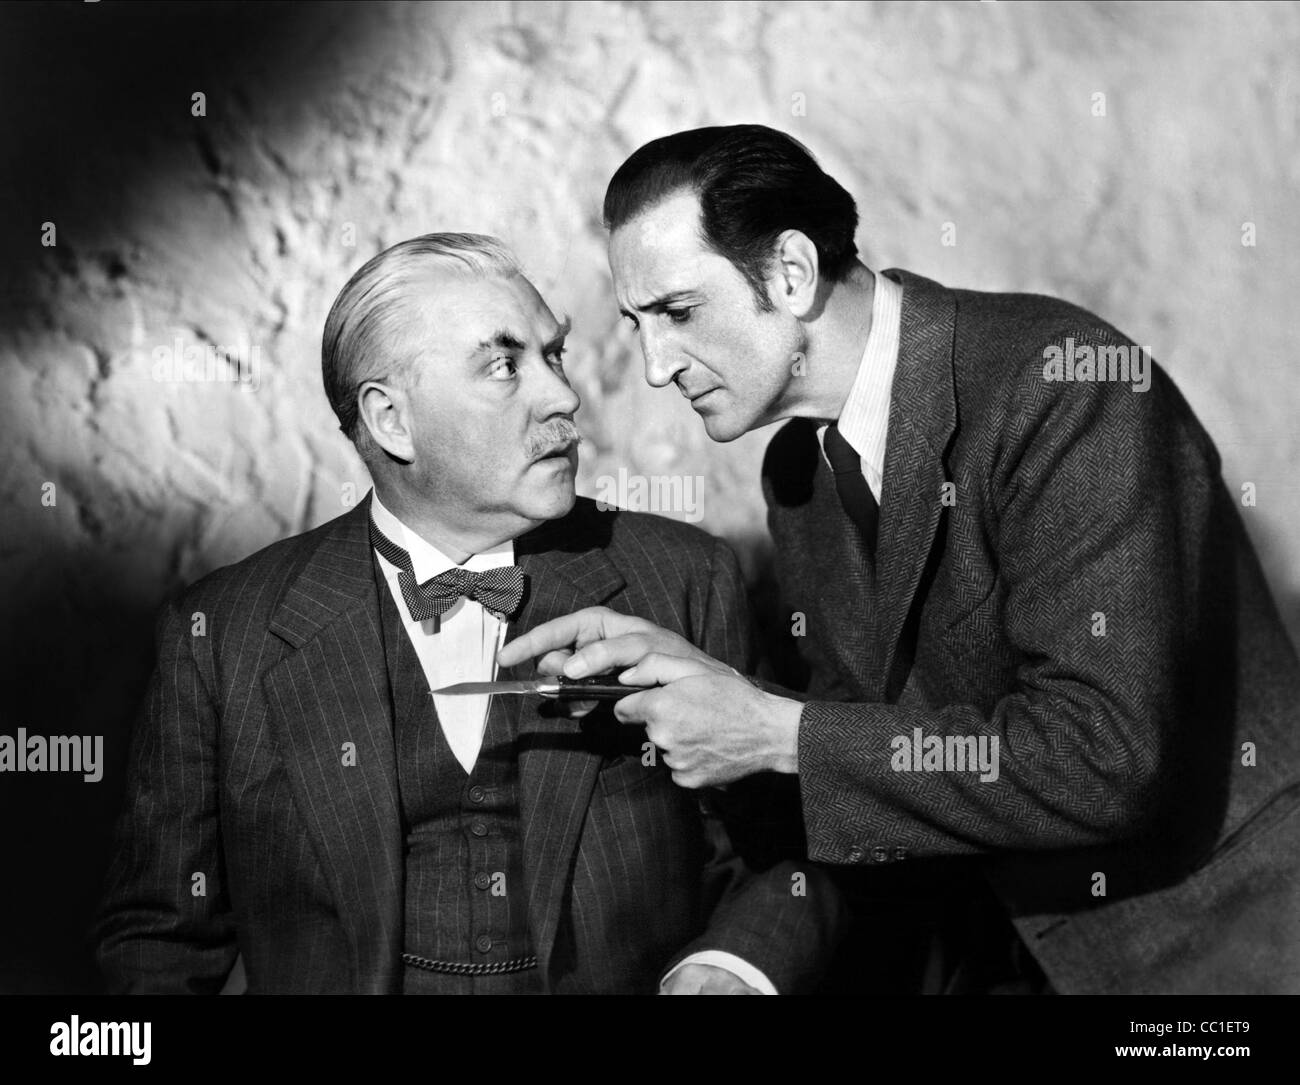 NIGEL BRUCE, BASIL RATHBONE, THE SCARLET CLAW, 1944 - Stock Image